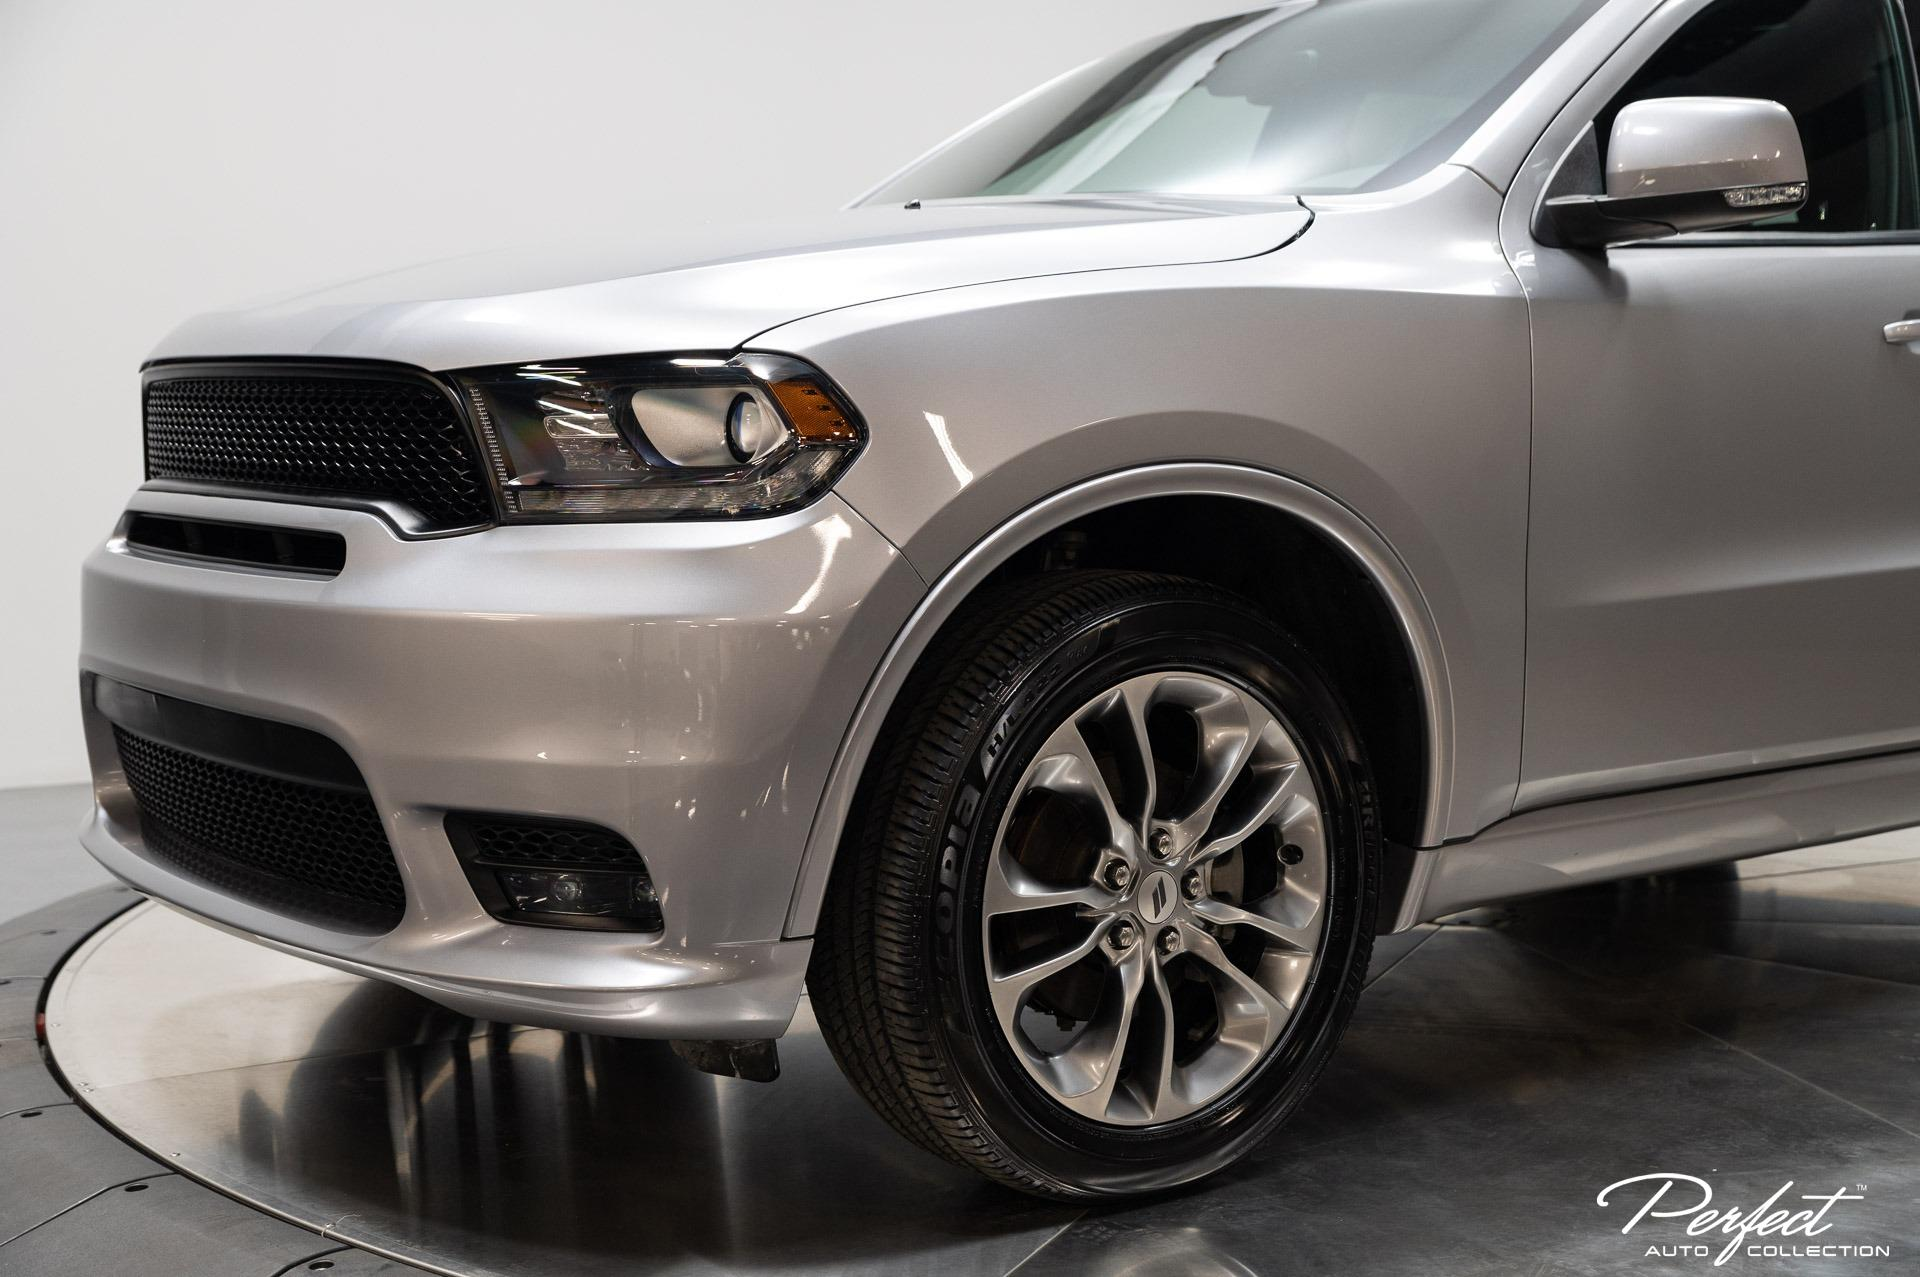 Used 2019 Dodge Durango GT Plus for sale $27,495 at Perfect Auto Collection in Akron OH 44310 4